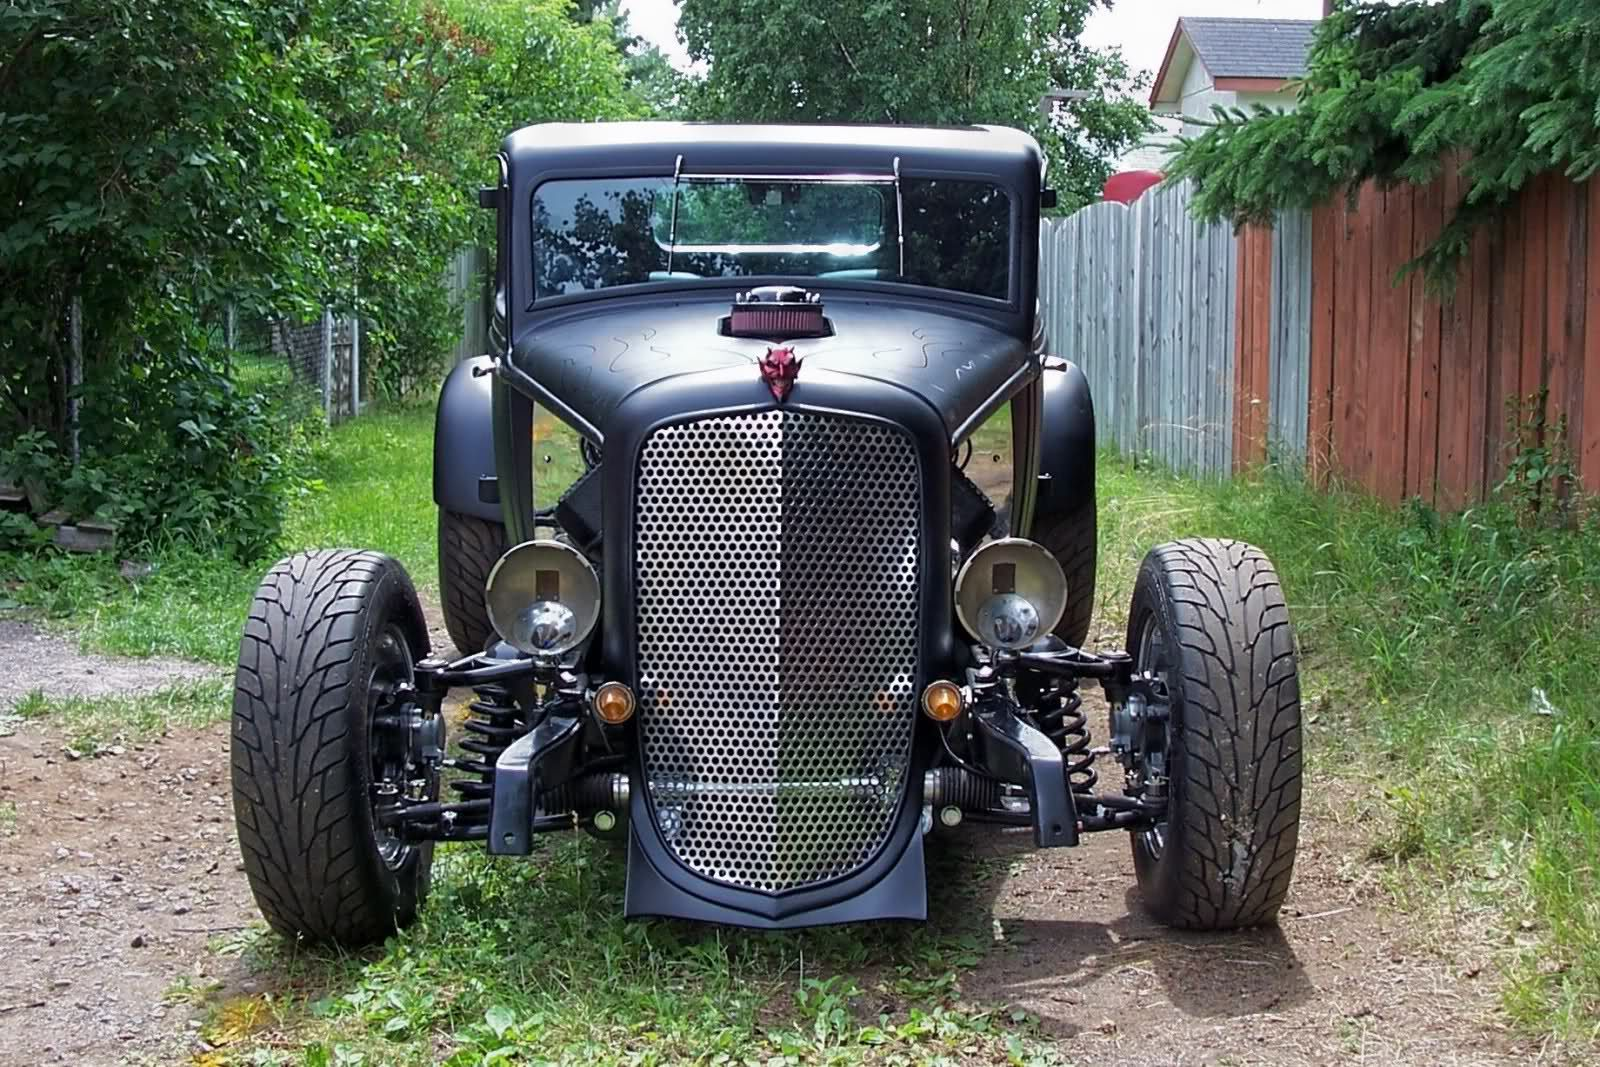 looking for front bumper/bumperette ideas - Hot Rod Forum ...